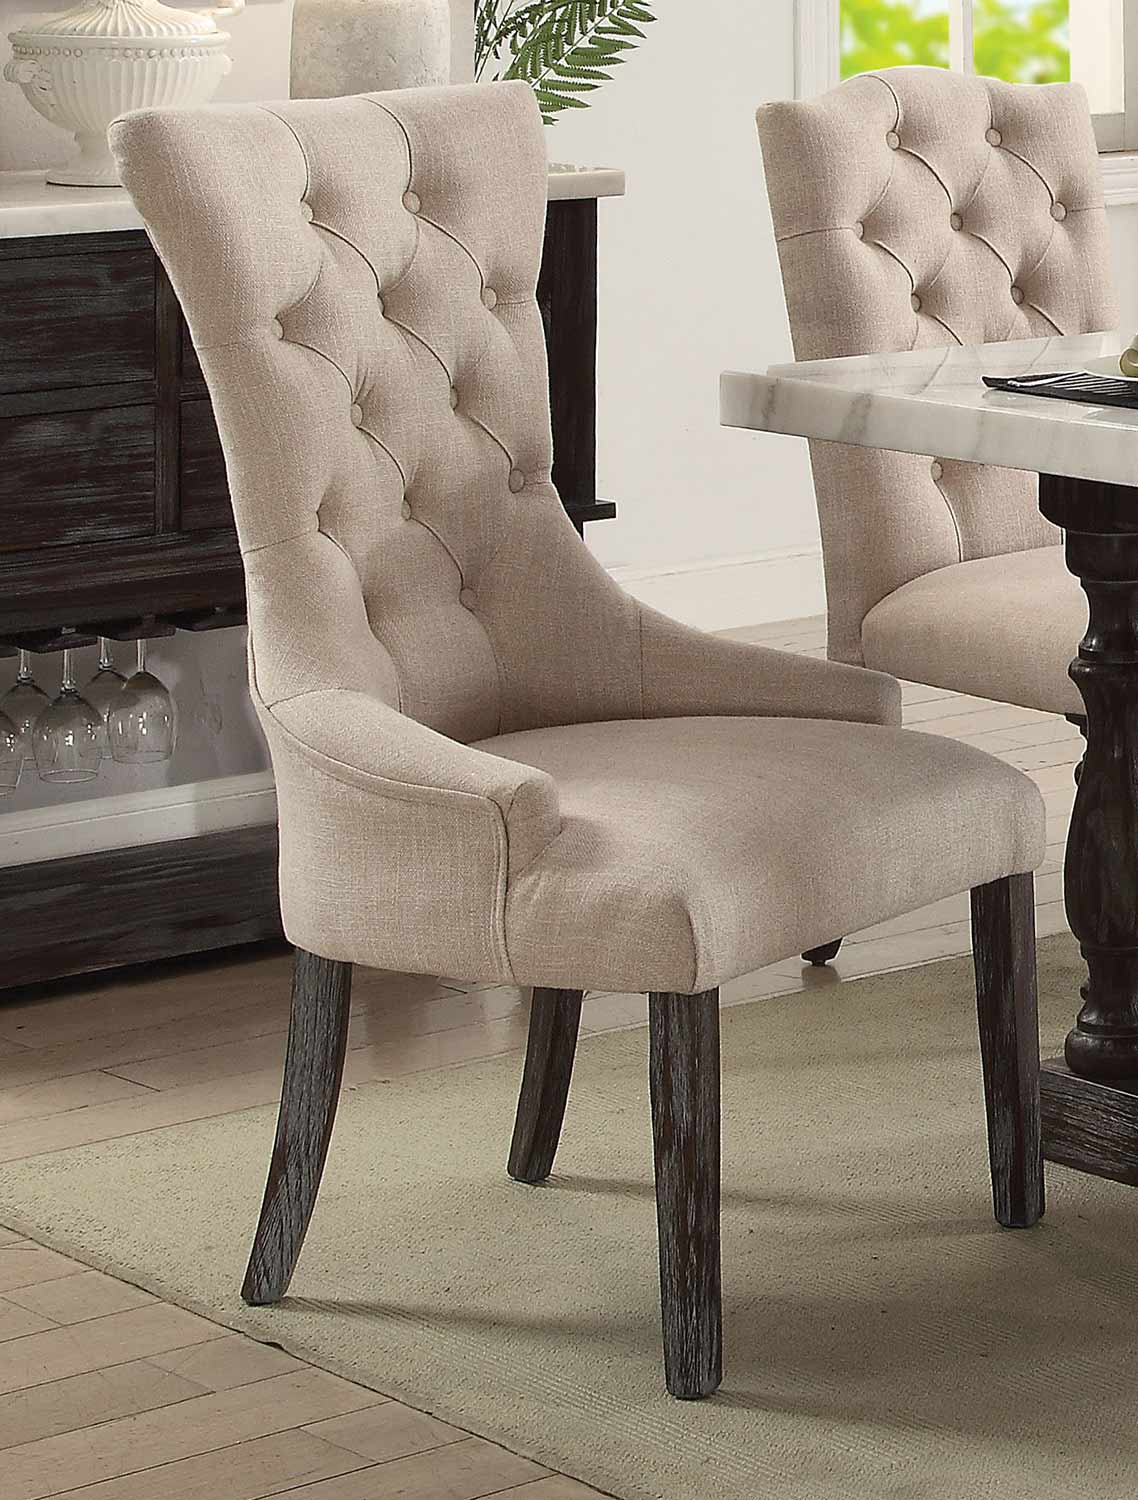 Acme Gerardo Arm Chair - Beige Linen/Weathered Espresso